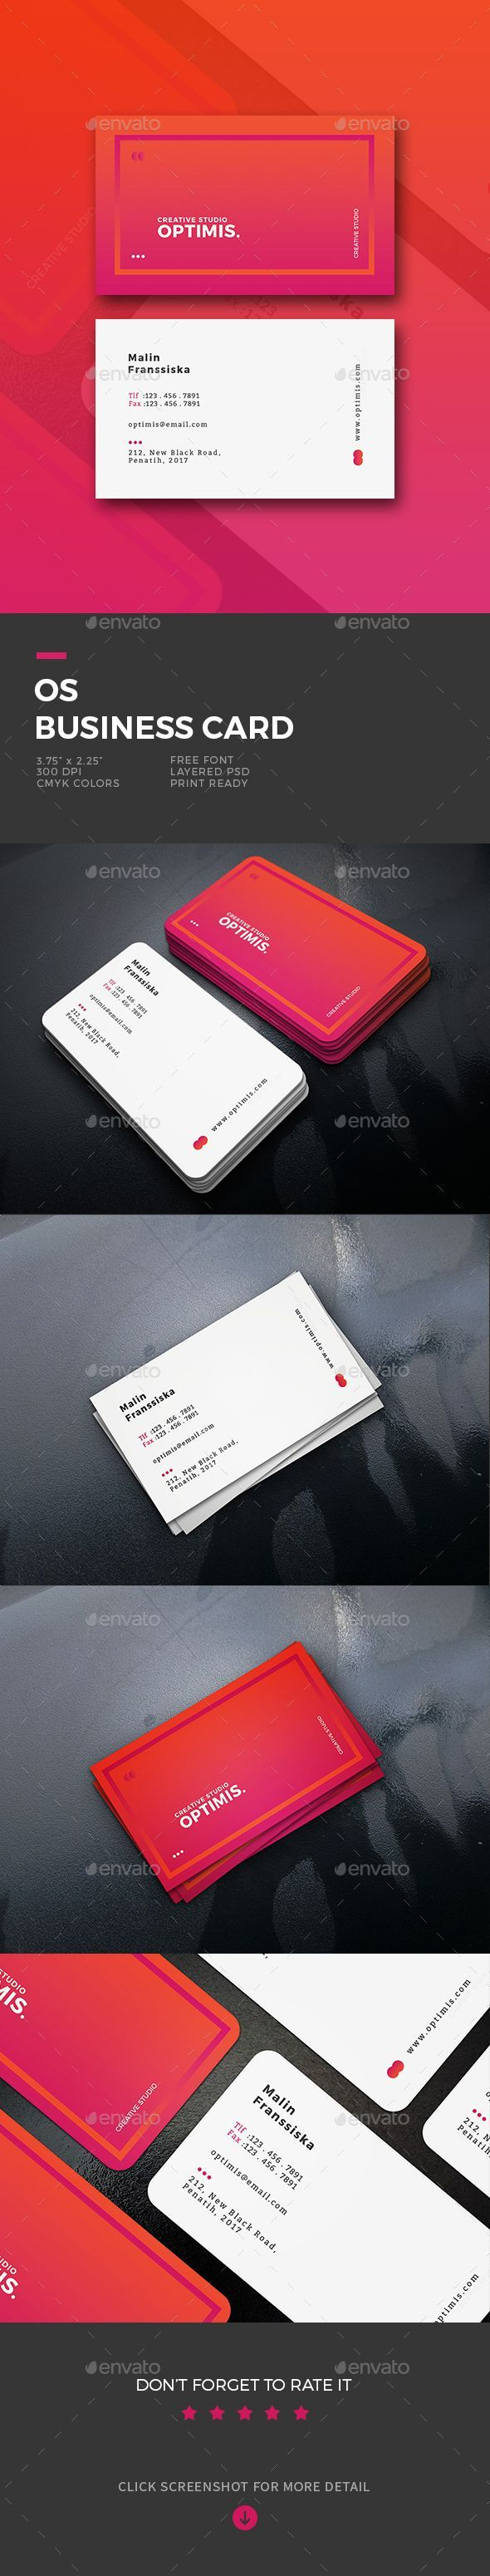 11938 best business card maker images on pinterest an email os business card business cards print templates download here https magicingreecefo Gallery